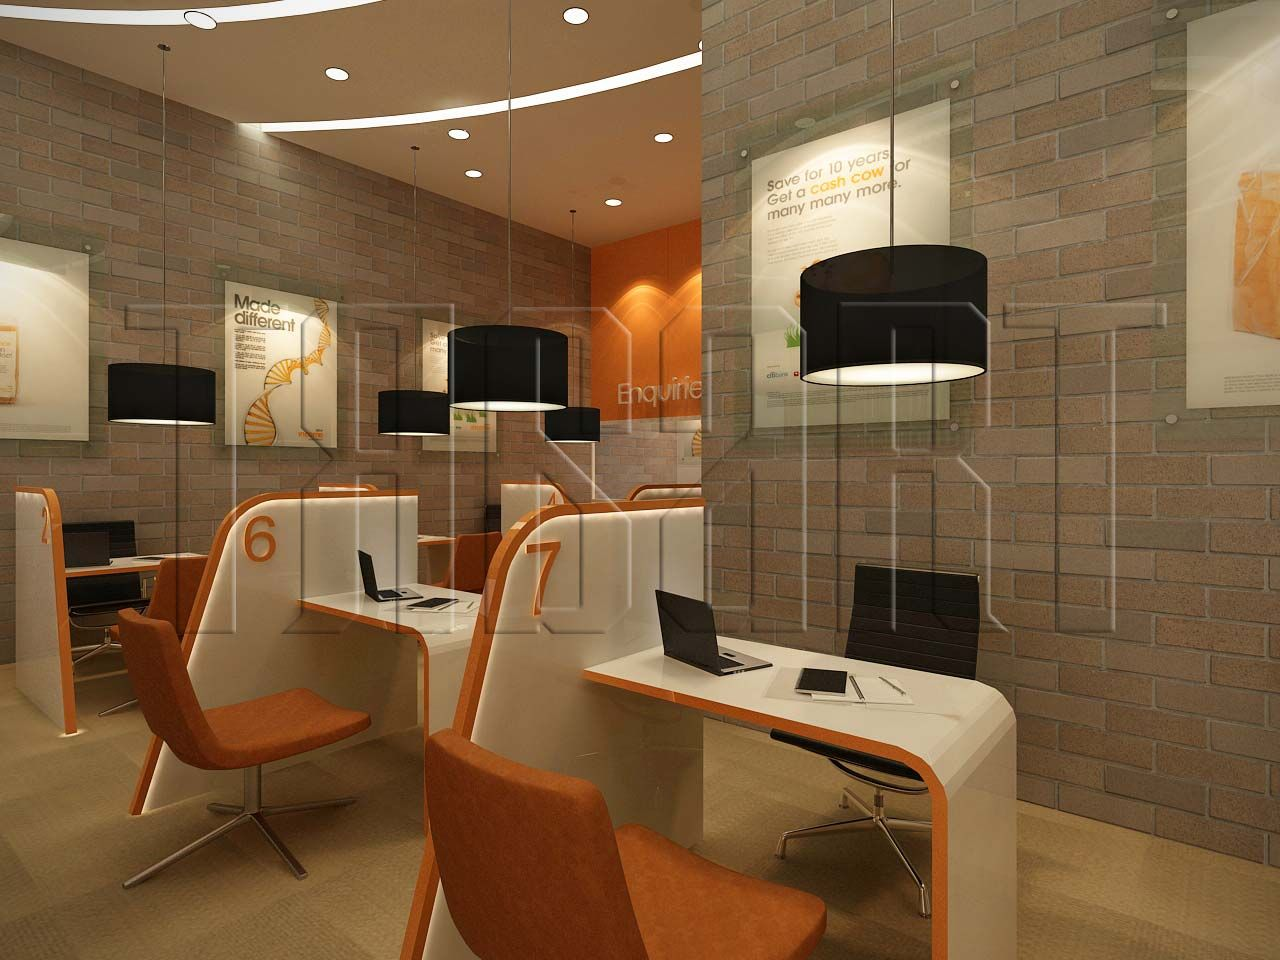 A modern futuristic look for a customer service counter for Furniture 7 customer service